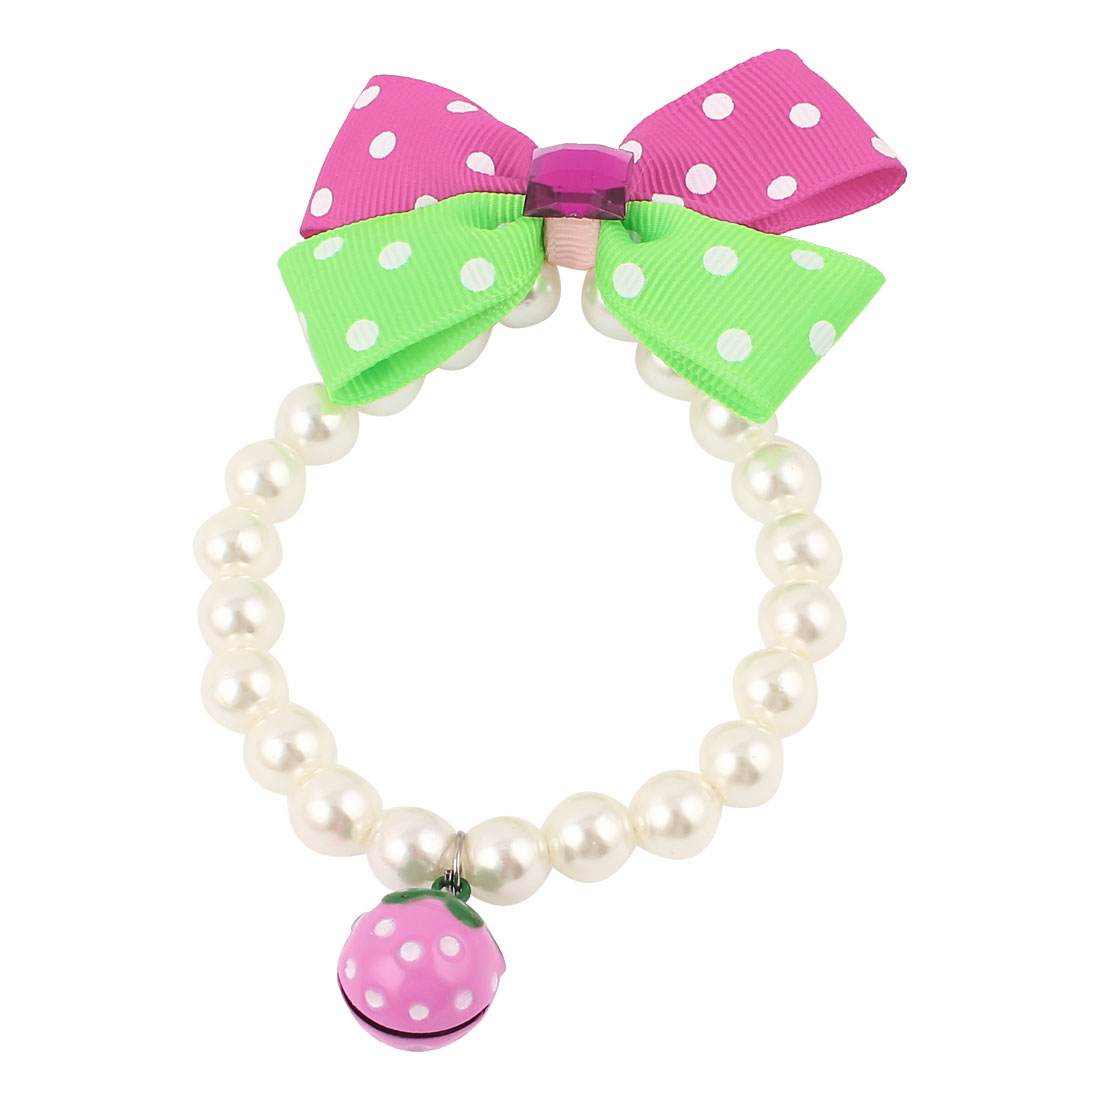 Metal Bell Pendant Bowknot Accent Pet Beads Imitation Pearls Collar Necklace White Green Fuchsia XS